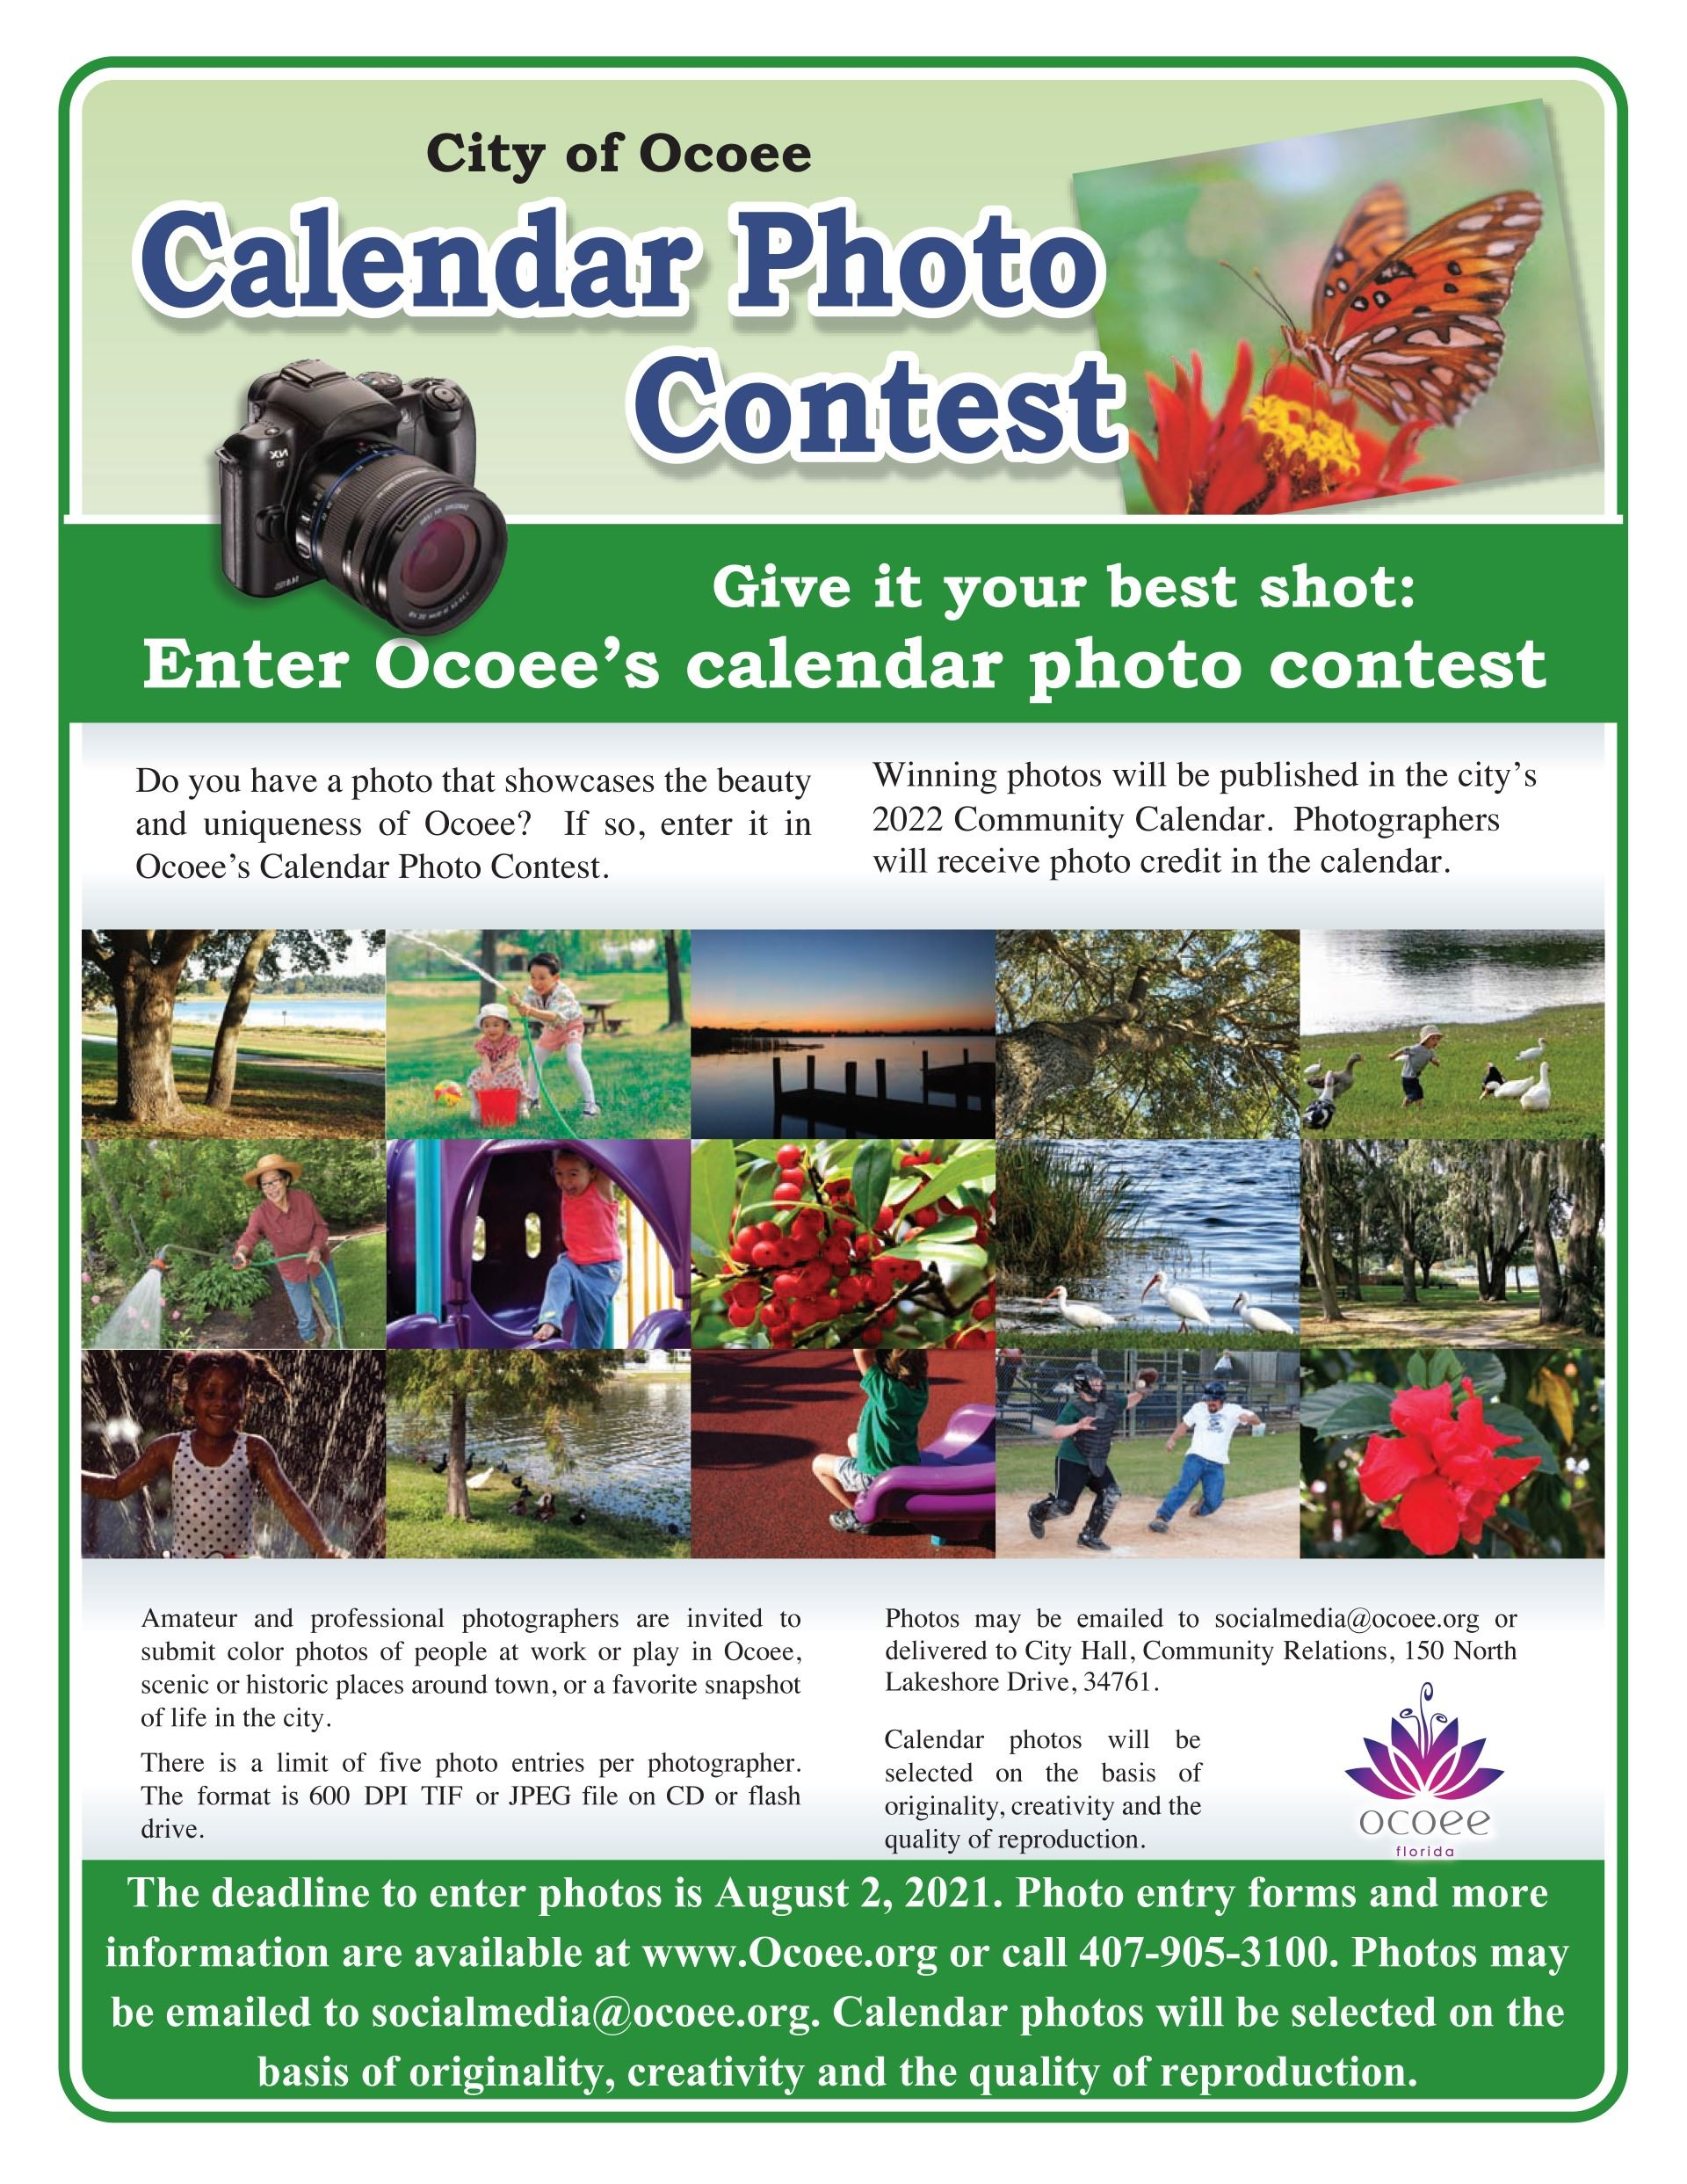 Ocoee Photo Contest flyer 2019